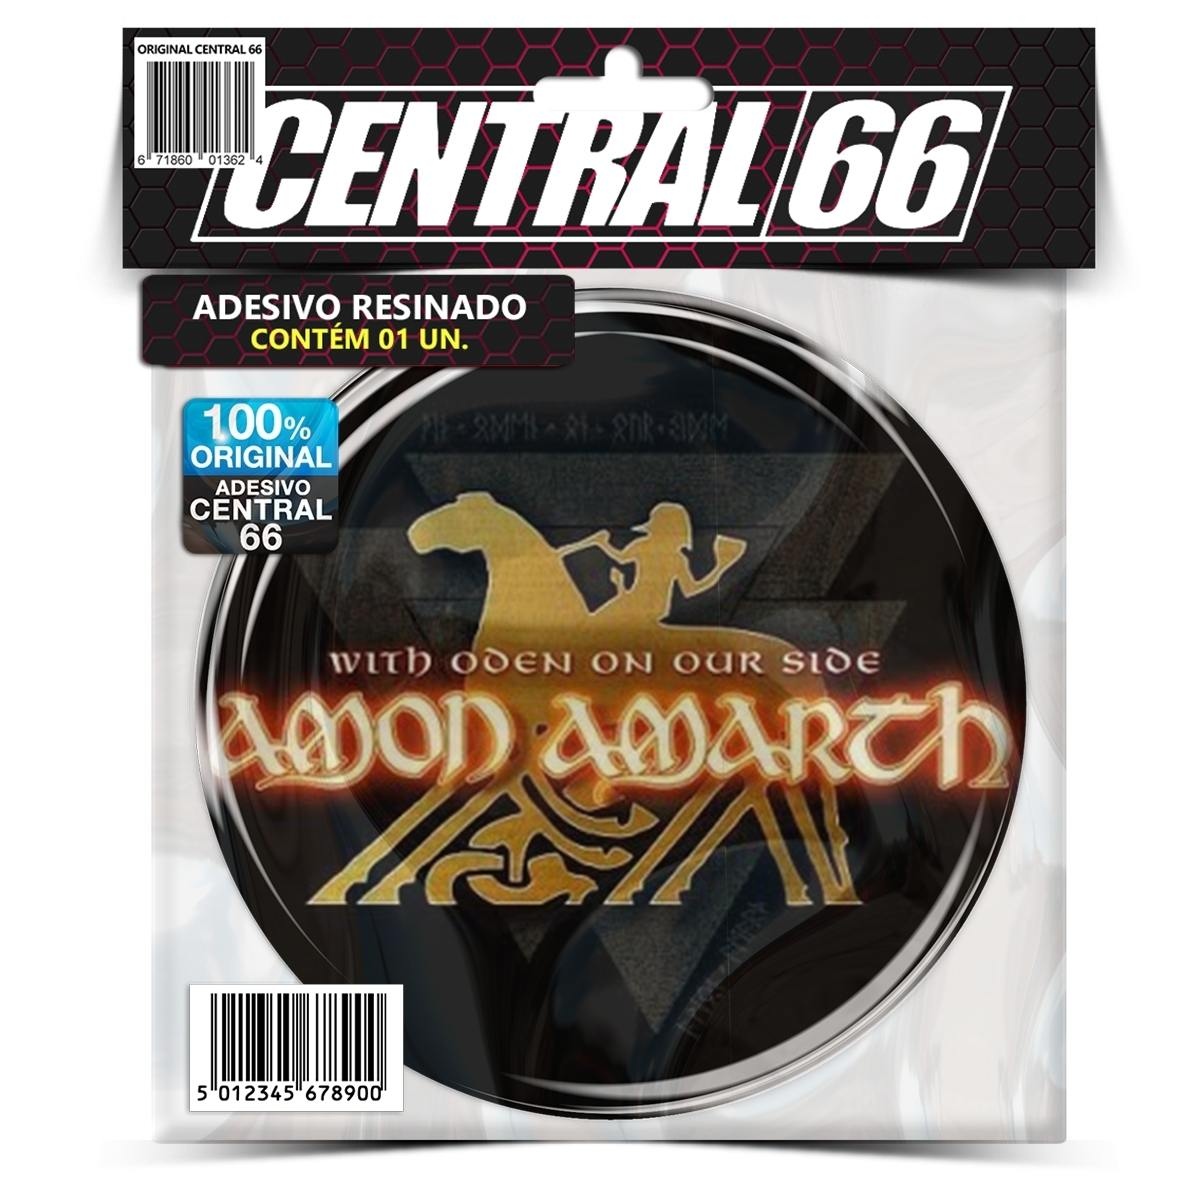 Adesivo Redondo Amon Amarth With Oden On Our Side – Central 66